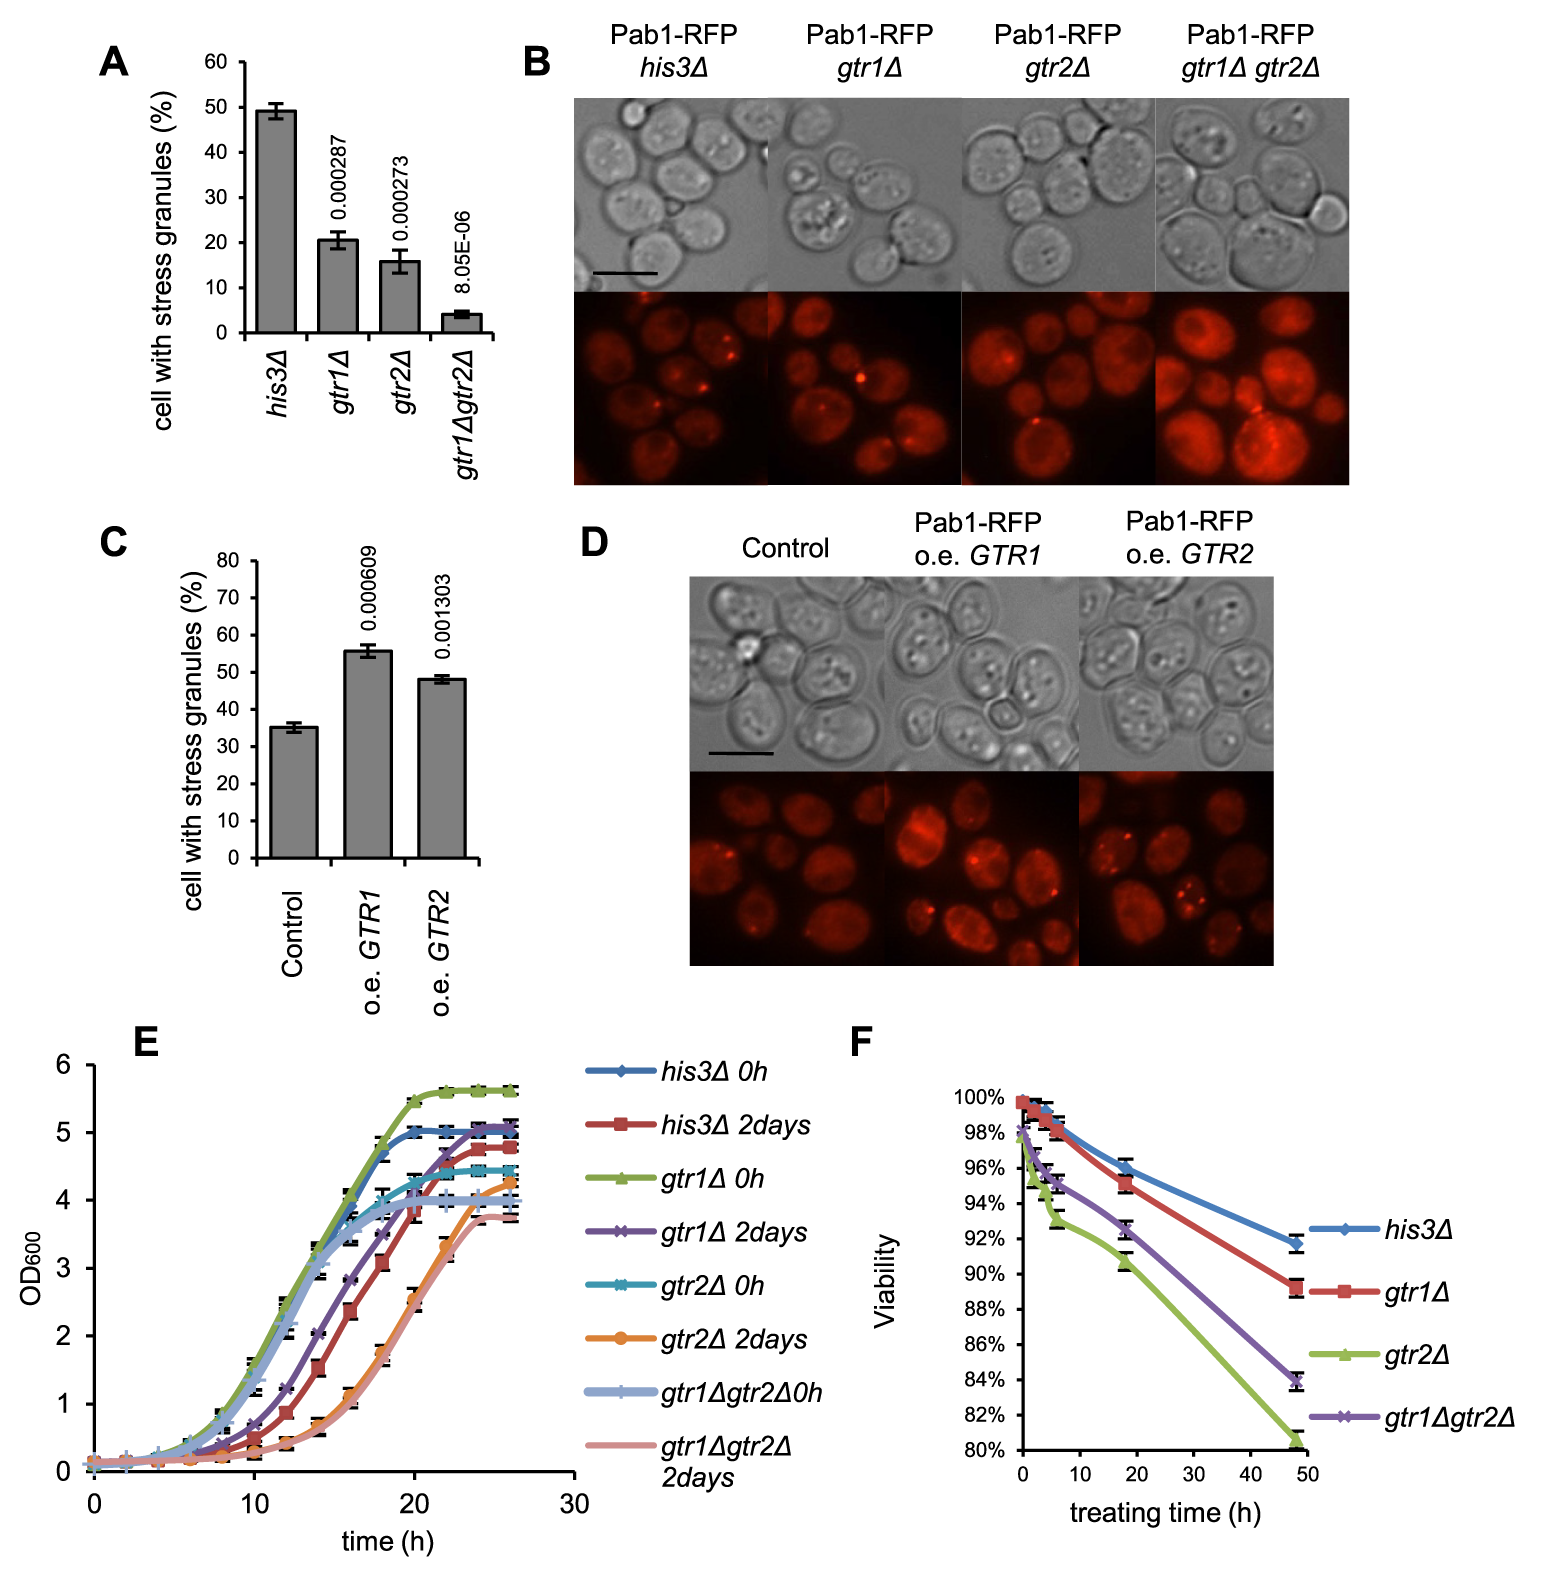 SG formation, recovery and post-stress survival is related to gene dosage of <i>GTR1</i> and <i>GTR2</i>.